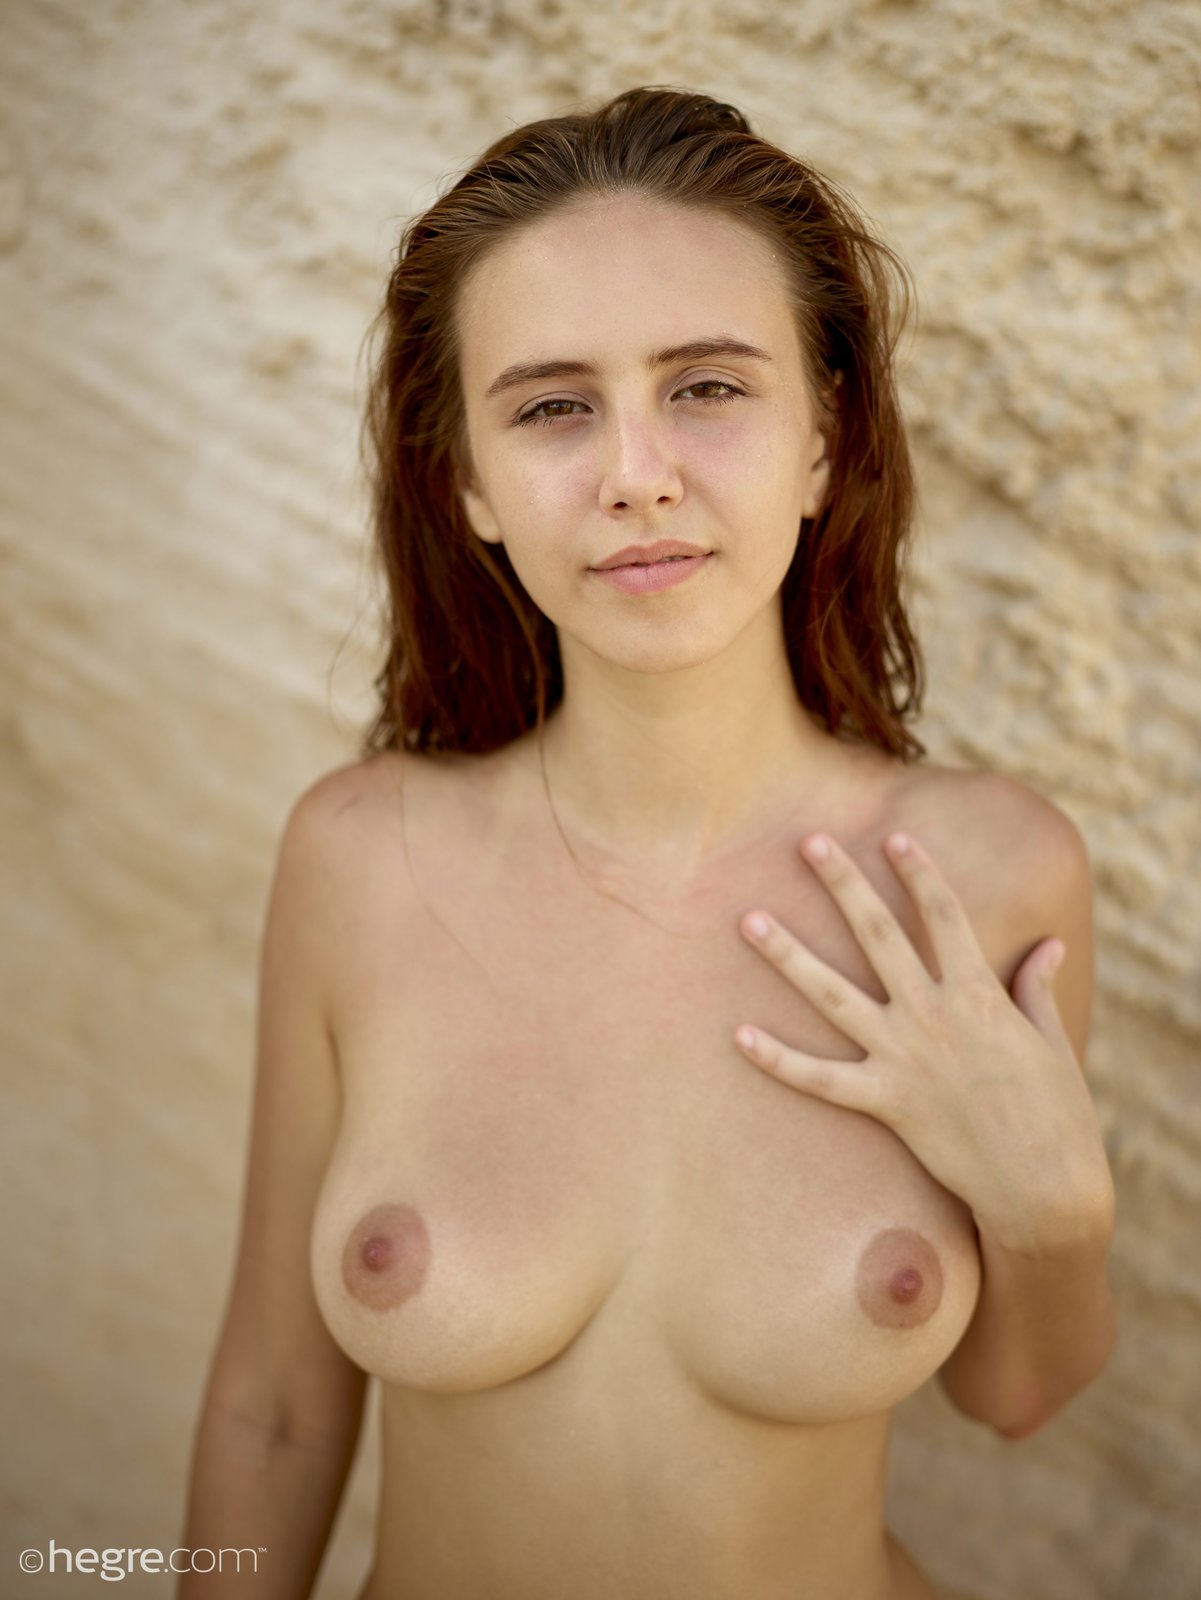 a girl named Alisa posing nude